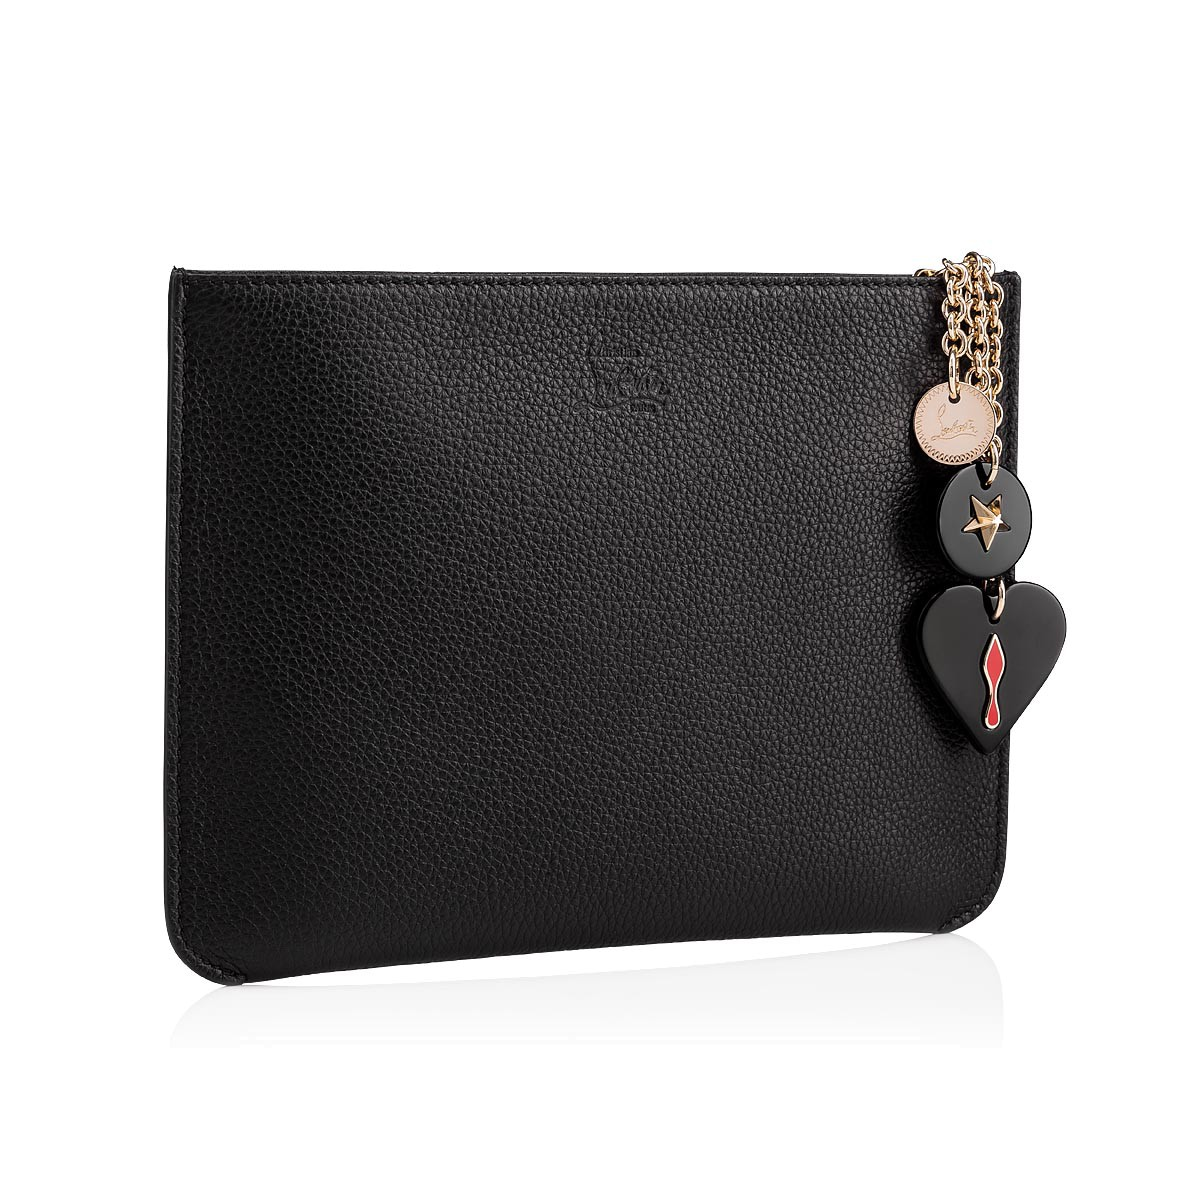 Accessories - Loubicute Charms - Christian Louboutin